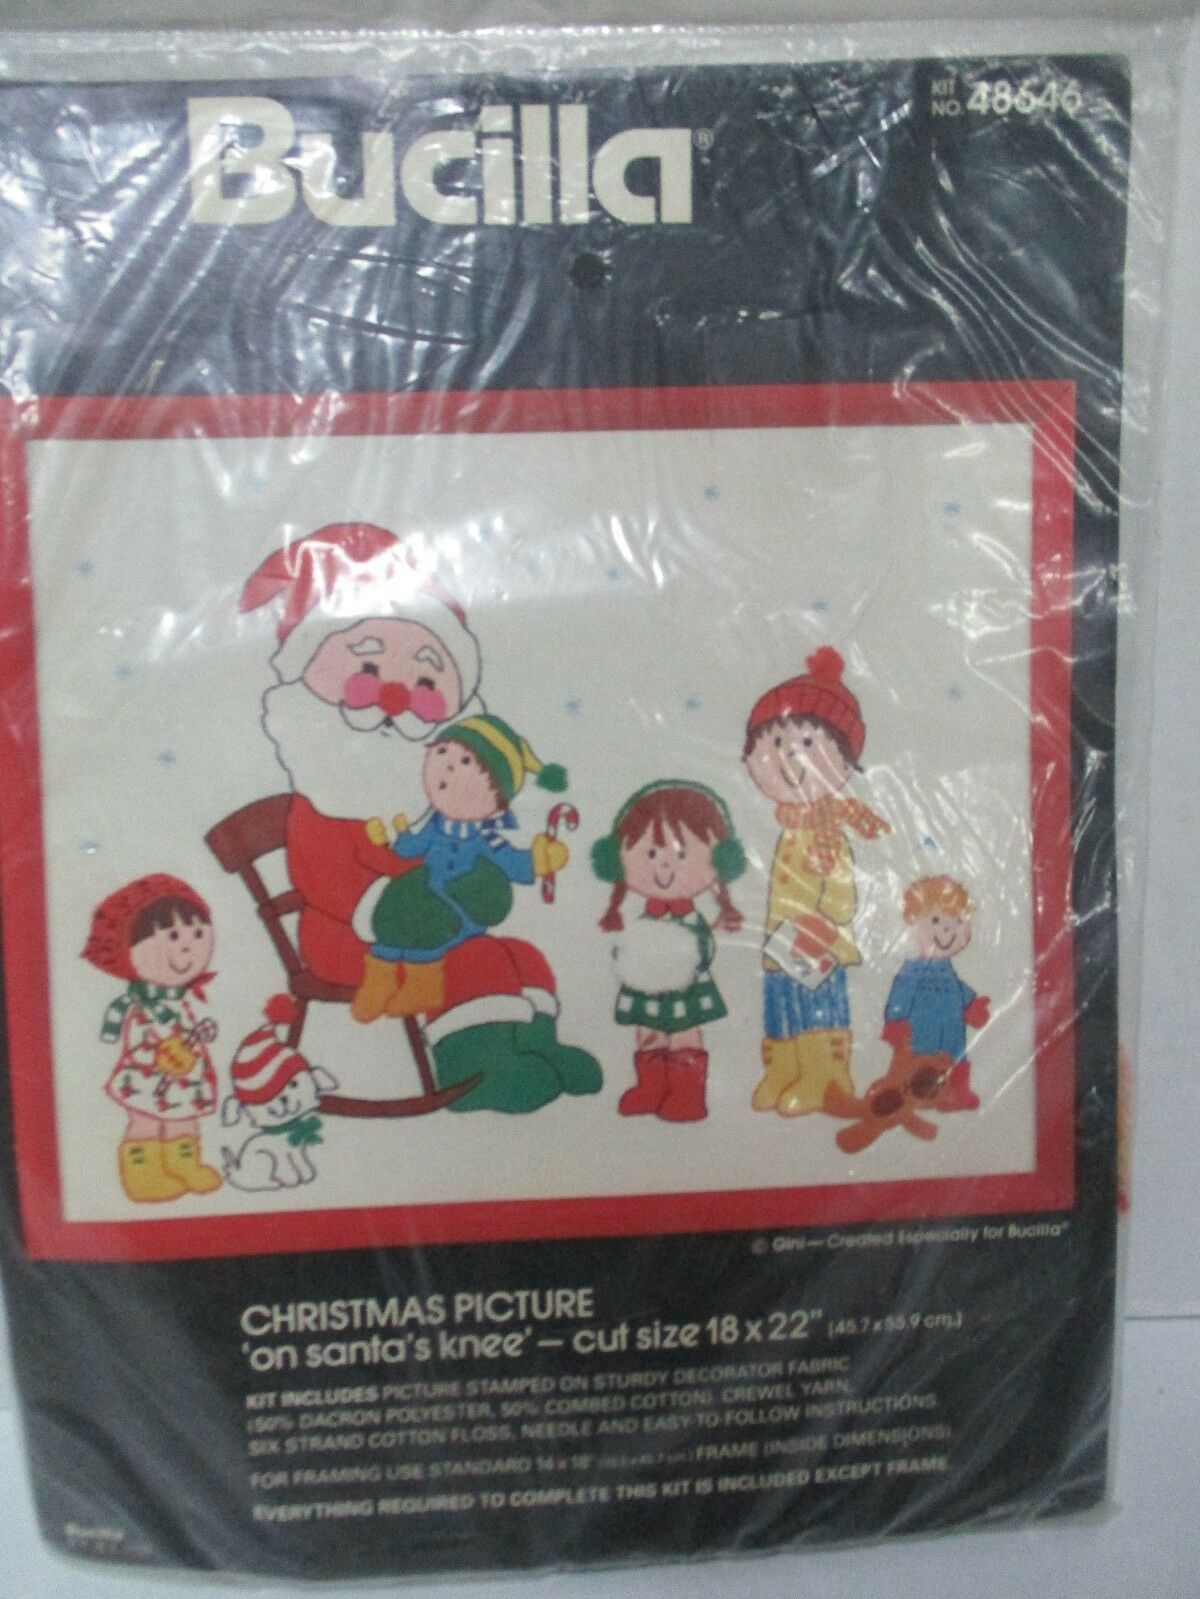 bucilla crewel embroidery kit on santas knee christmas usa 48646 sealed gini